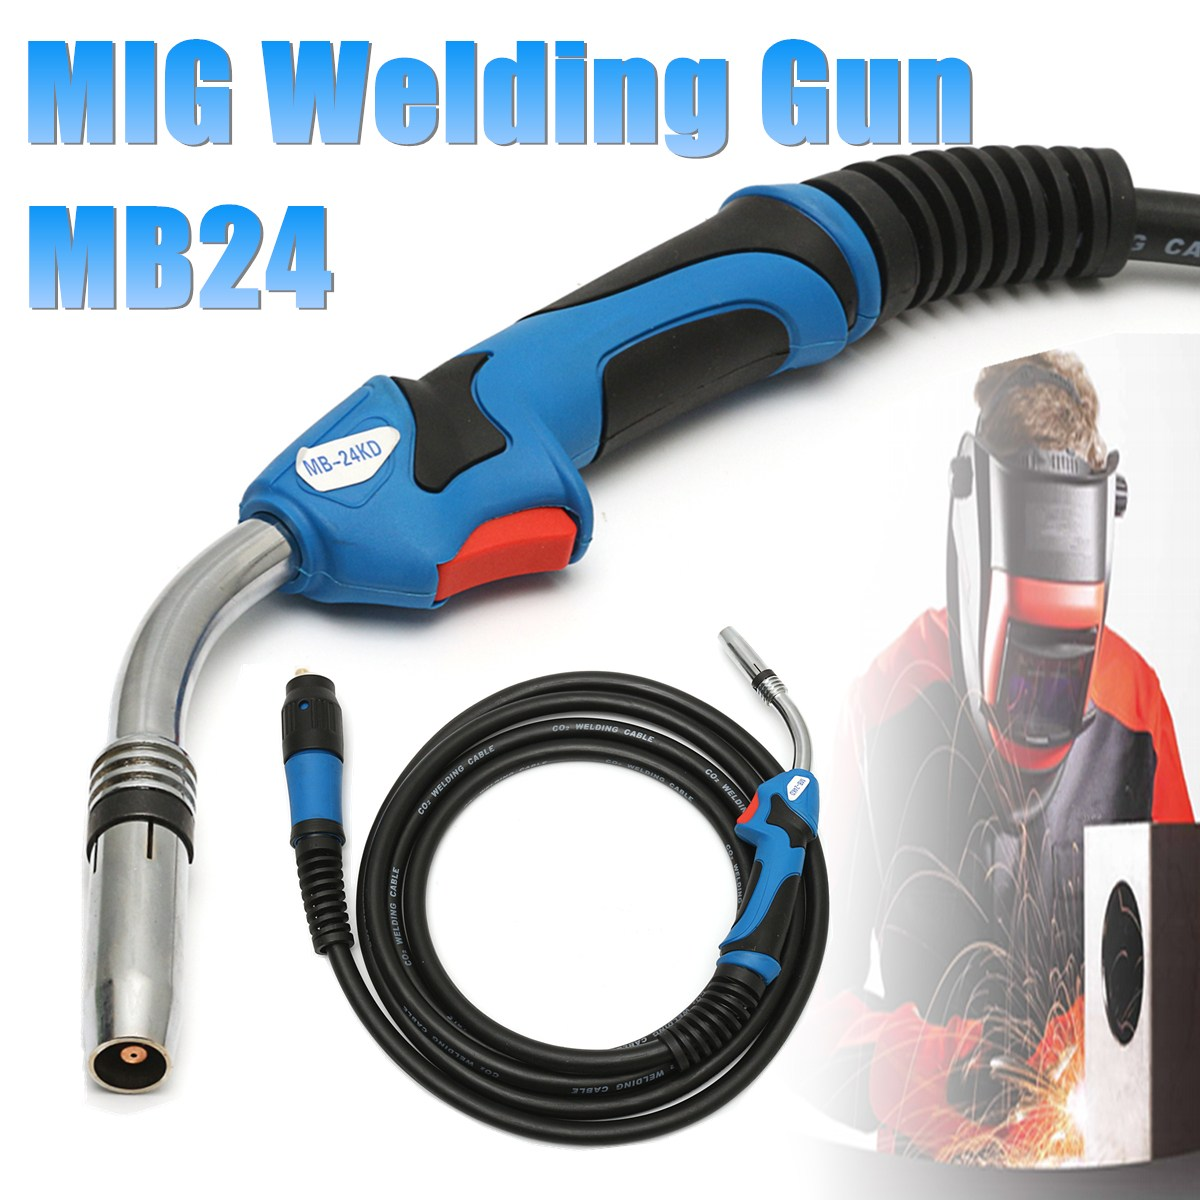 1Pcs MB24 MIG Welding Gun-Torch  with 5 Meter Length Lead Electric Welder Torch Stinger Parts